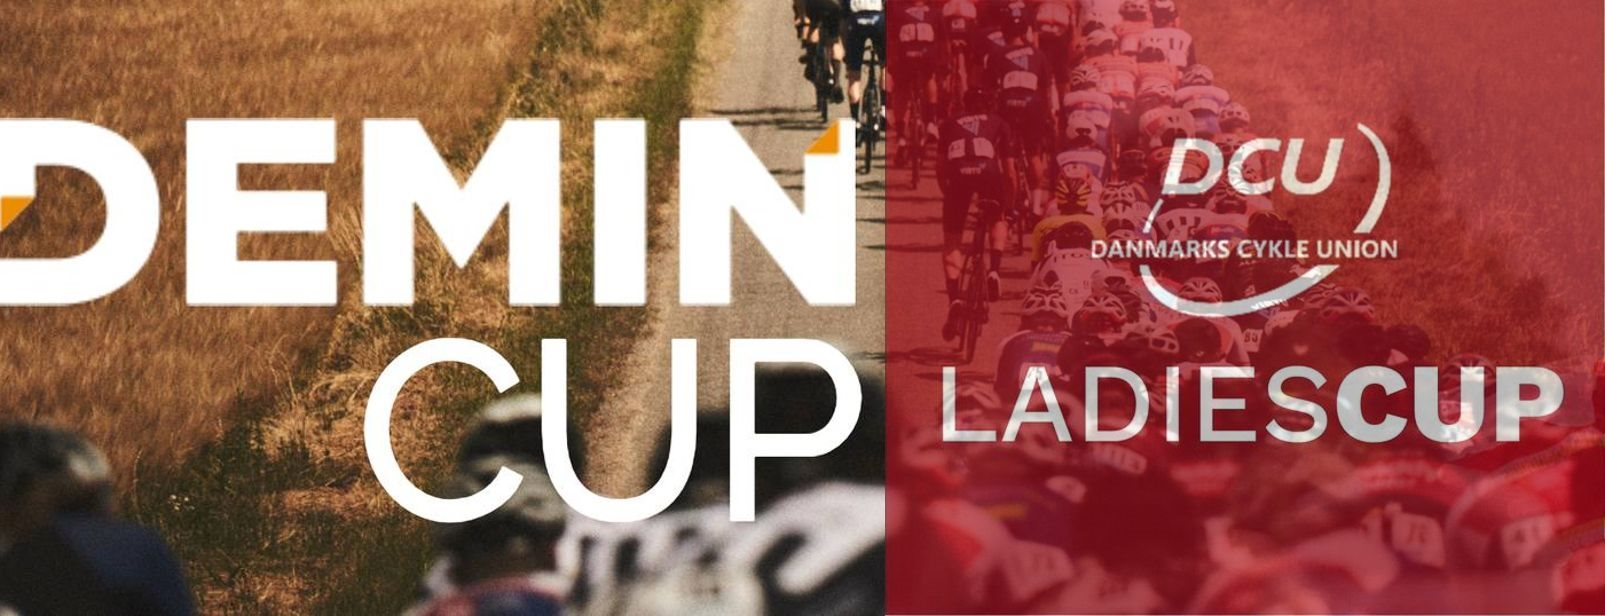 Holbæk CS Demin Cup //Ladies Cup // Uno-X Cup 1. afd.